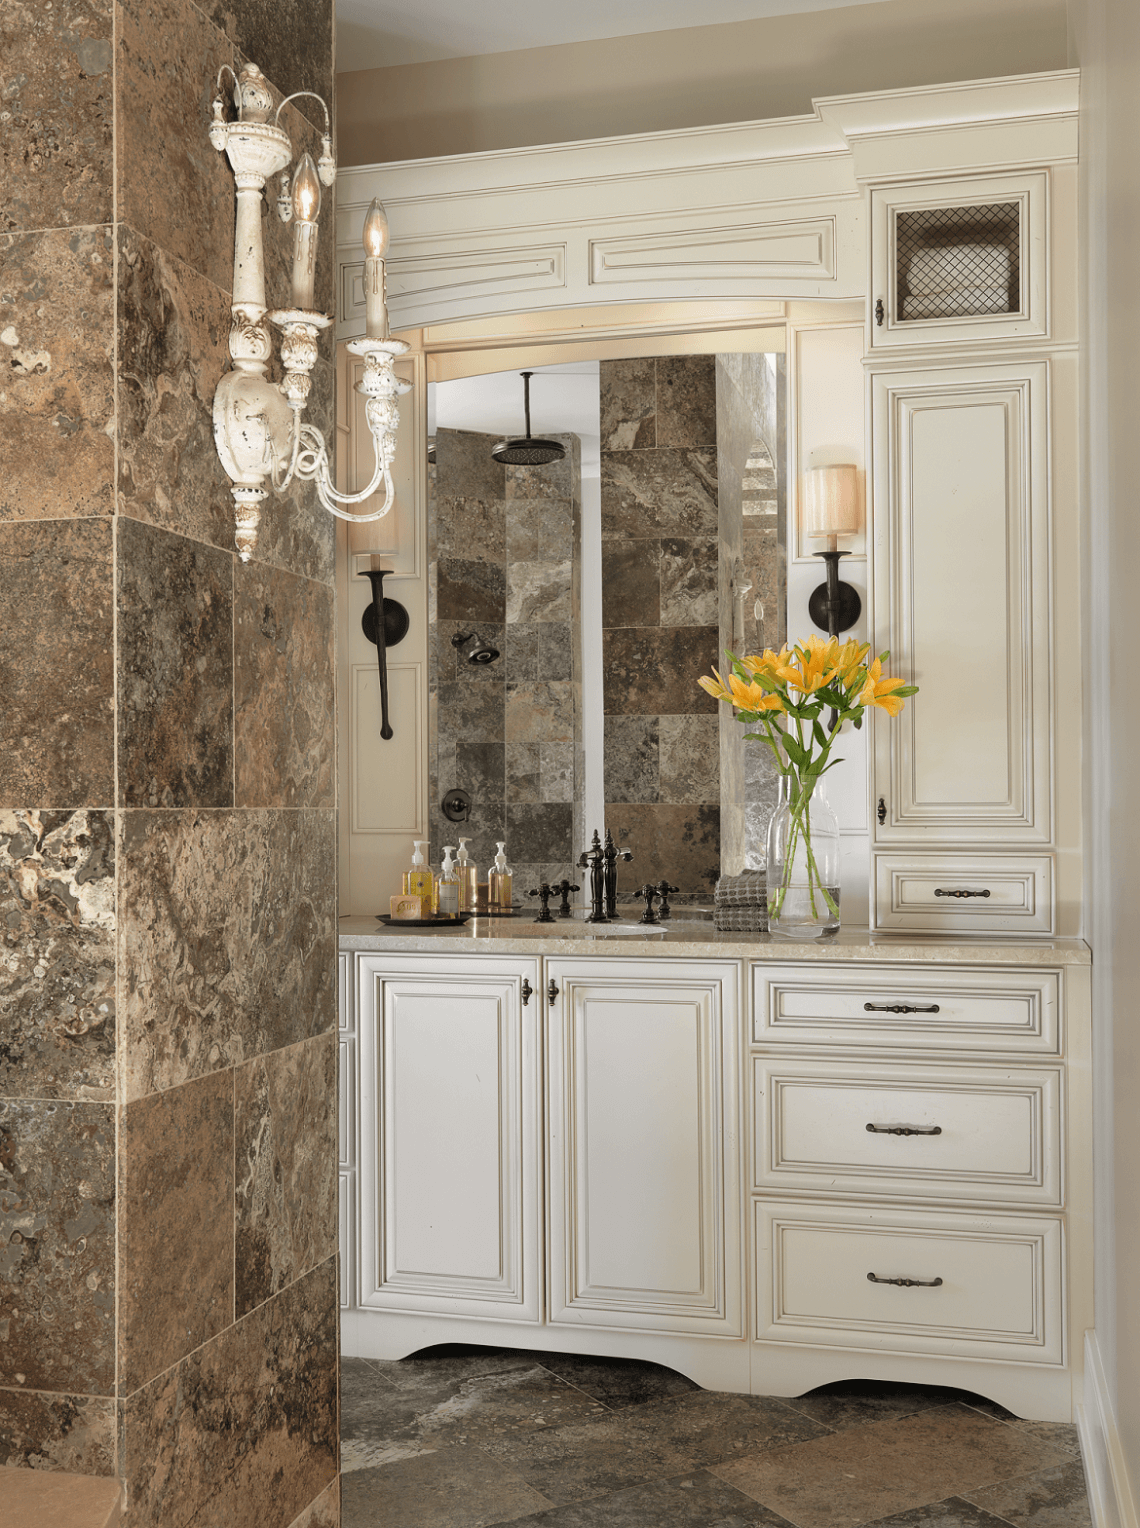 Elegant master bathrooms - An Elegant Master Bathroom